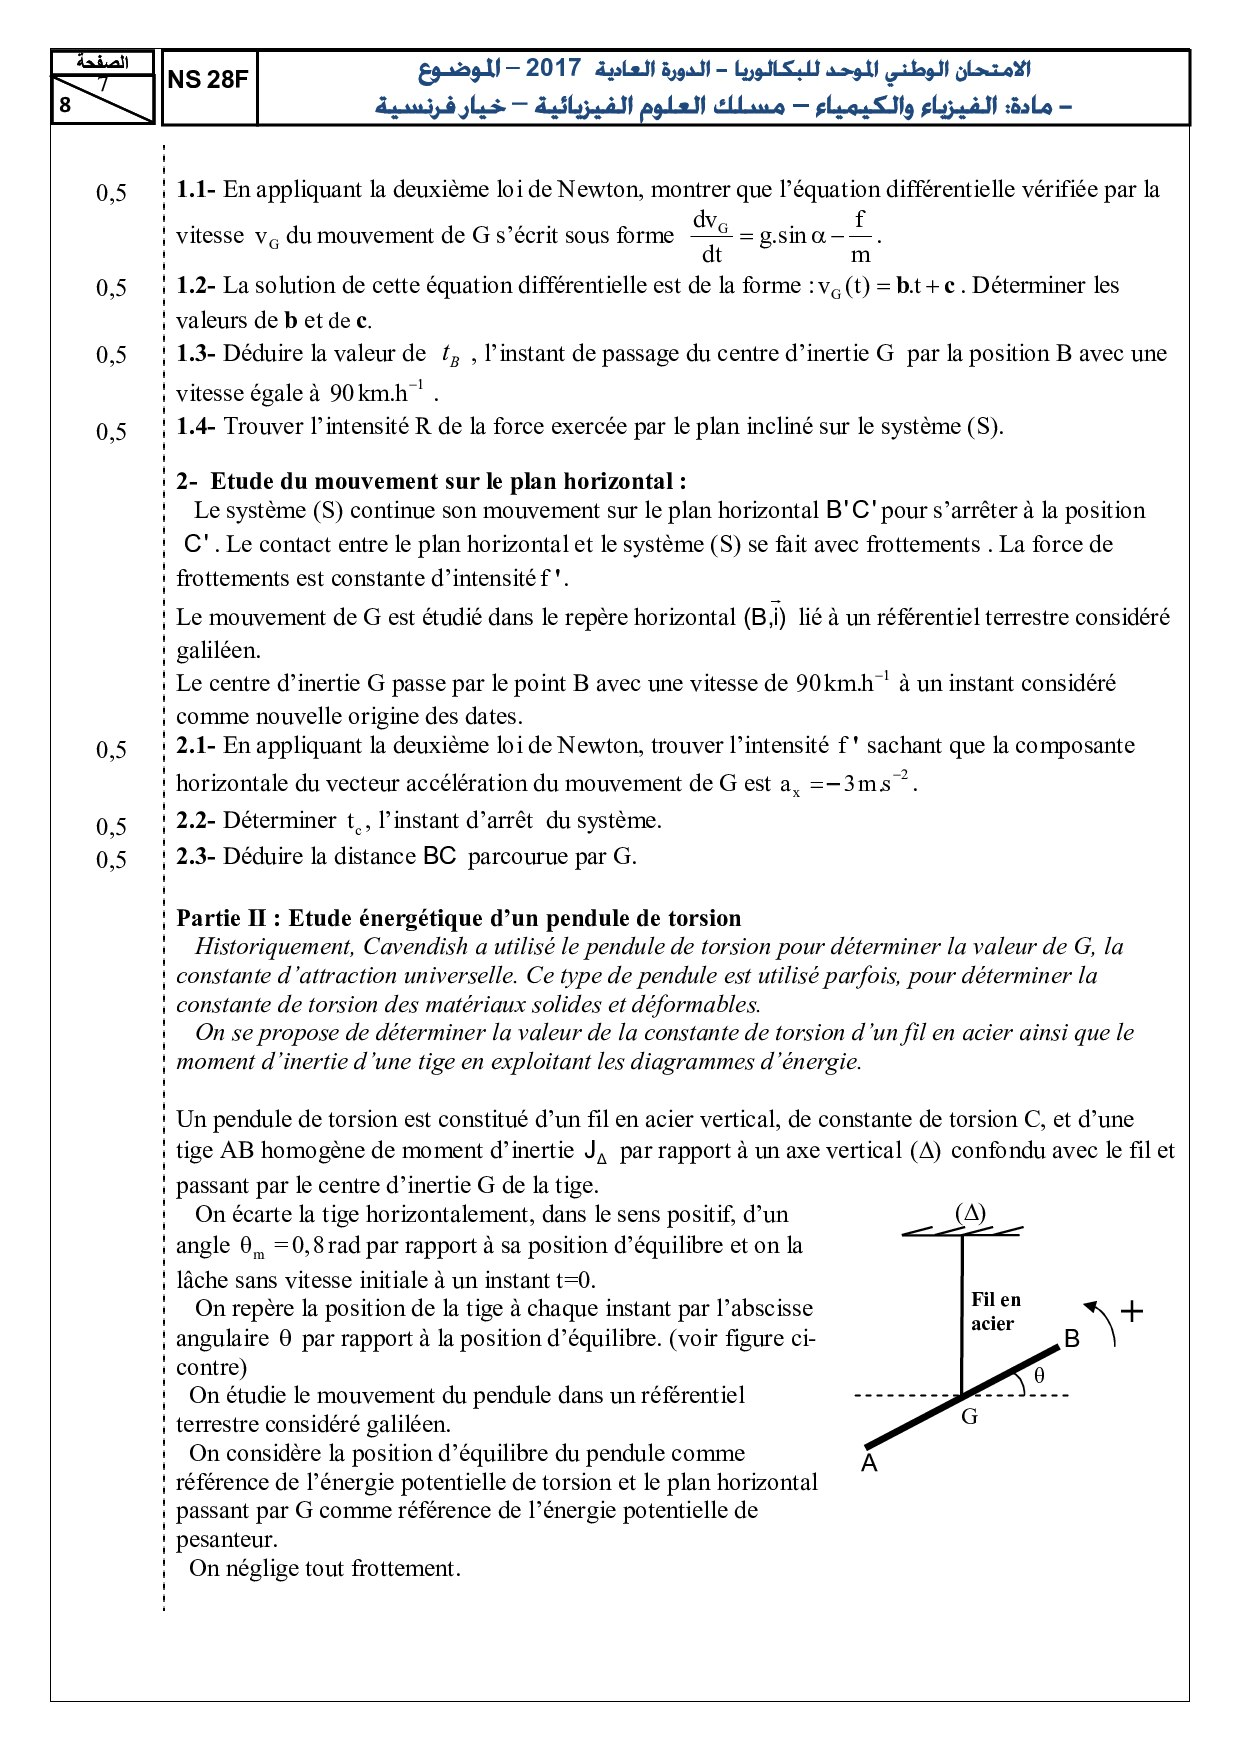 Examen National Physique-Chimie SPC 2017 Normale - Sujet7.jpg